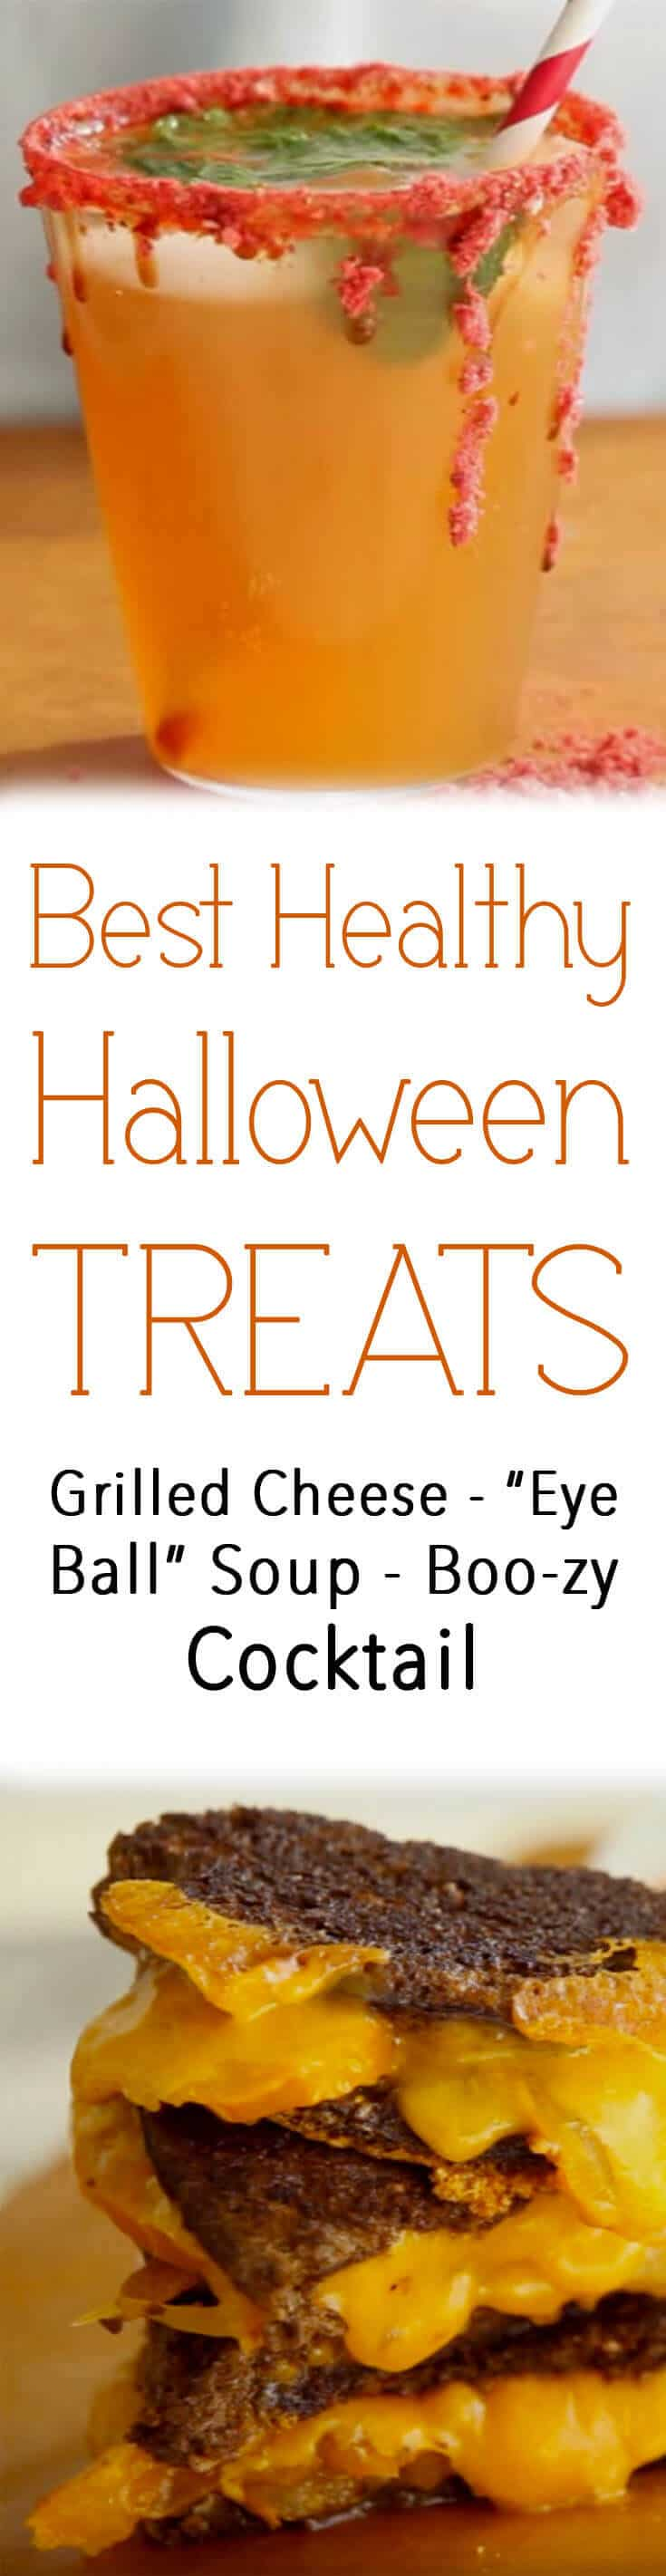 These healthy Halloween treats will satisfy the inner kid in all of us this Hallows' Eve!